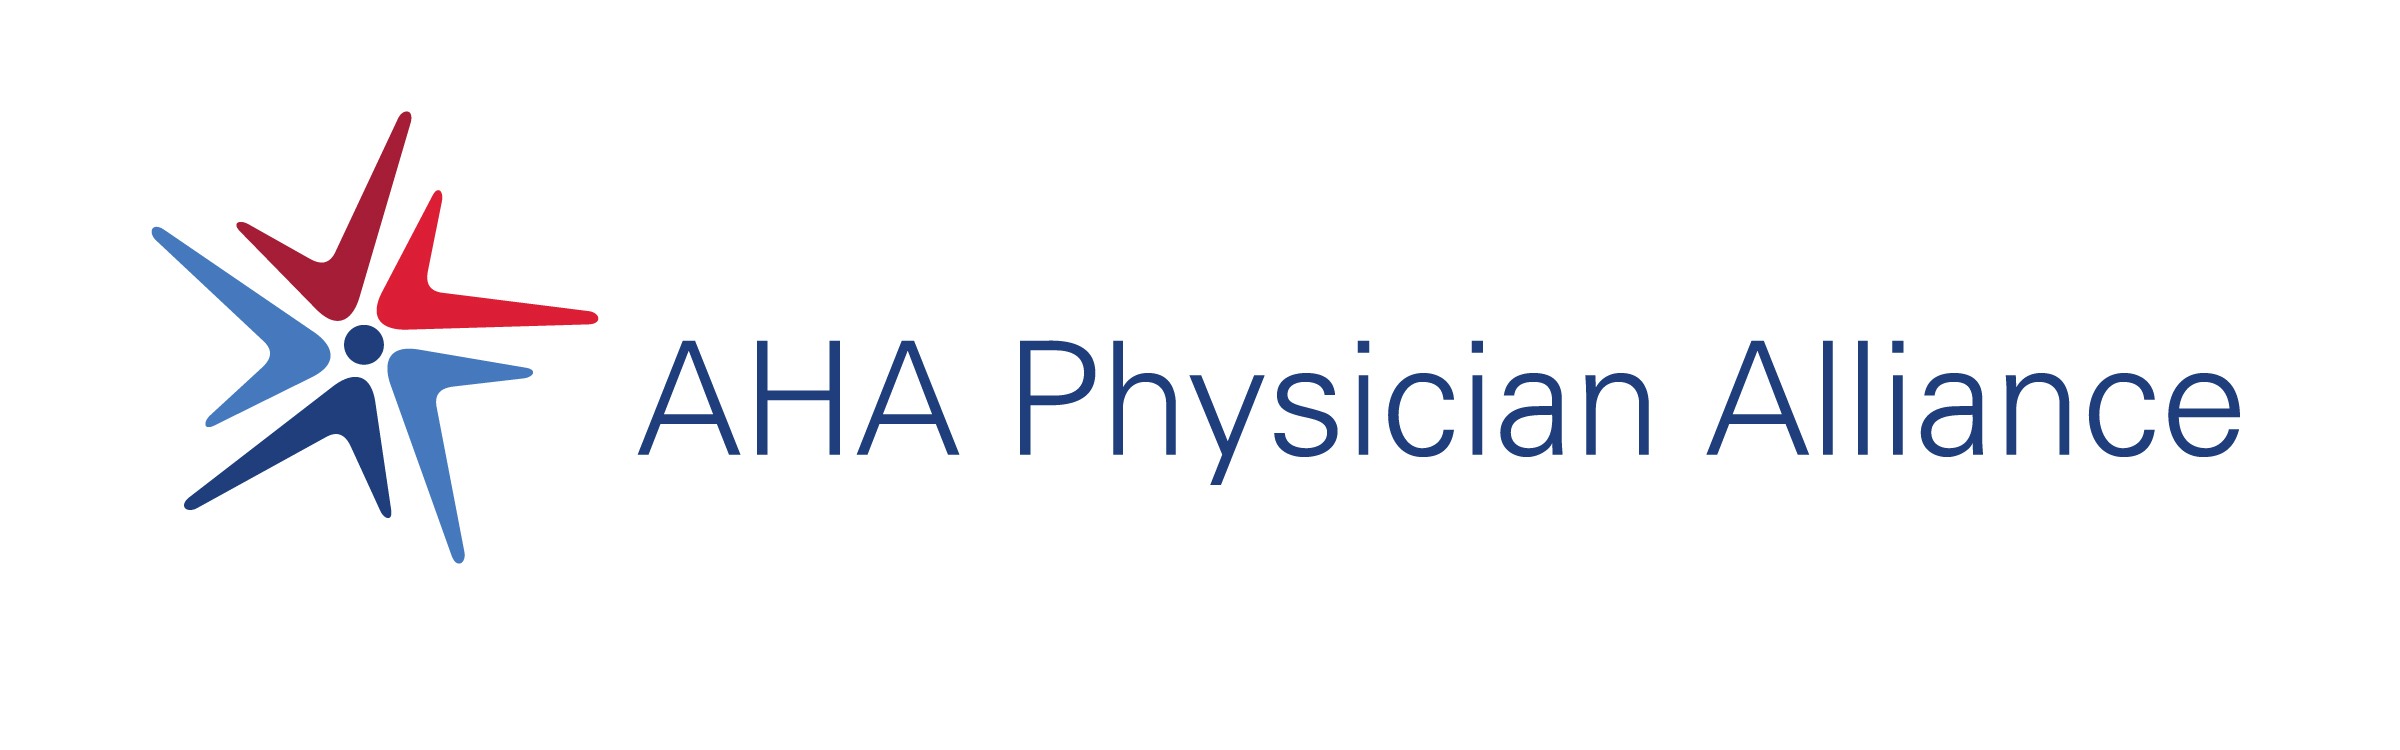 AHA Physician Alliance